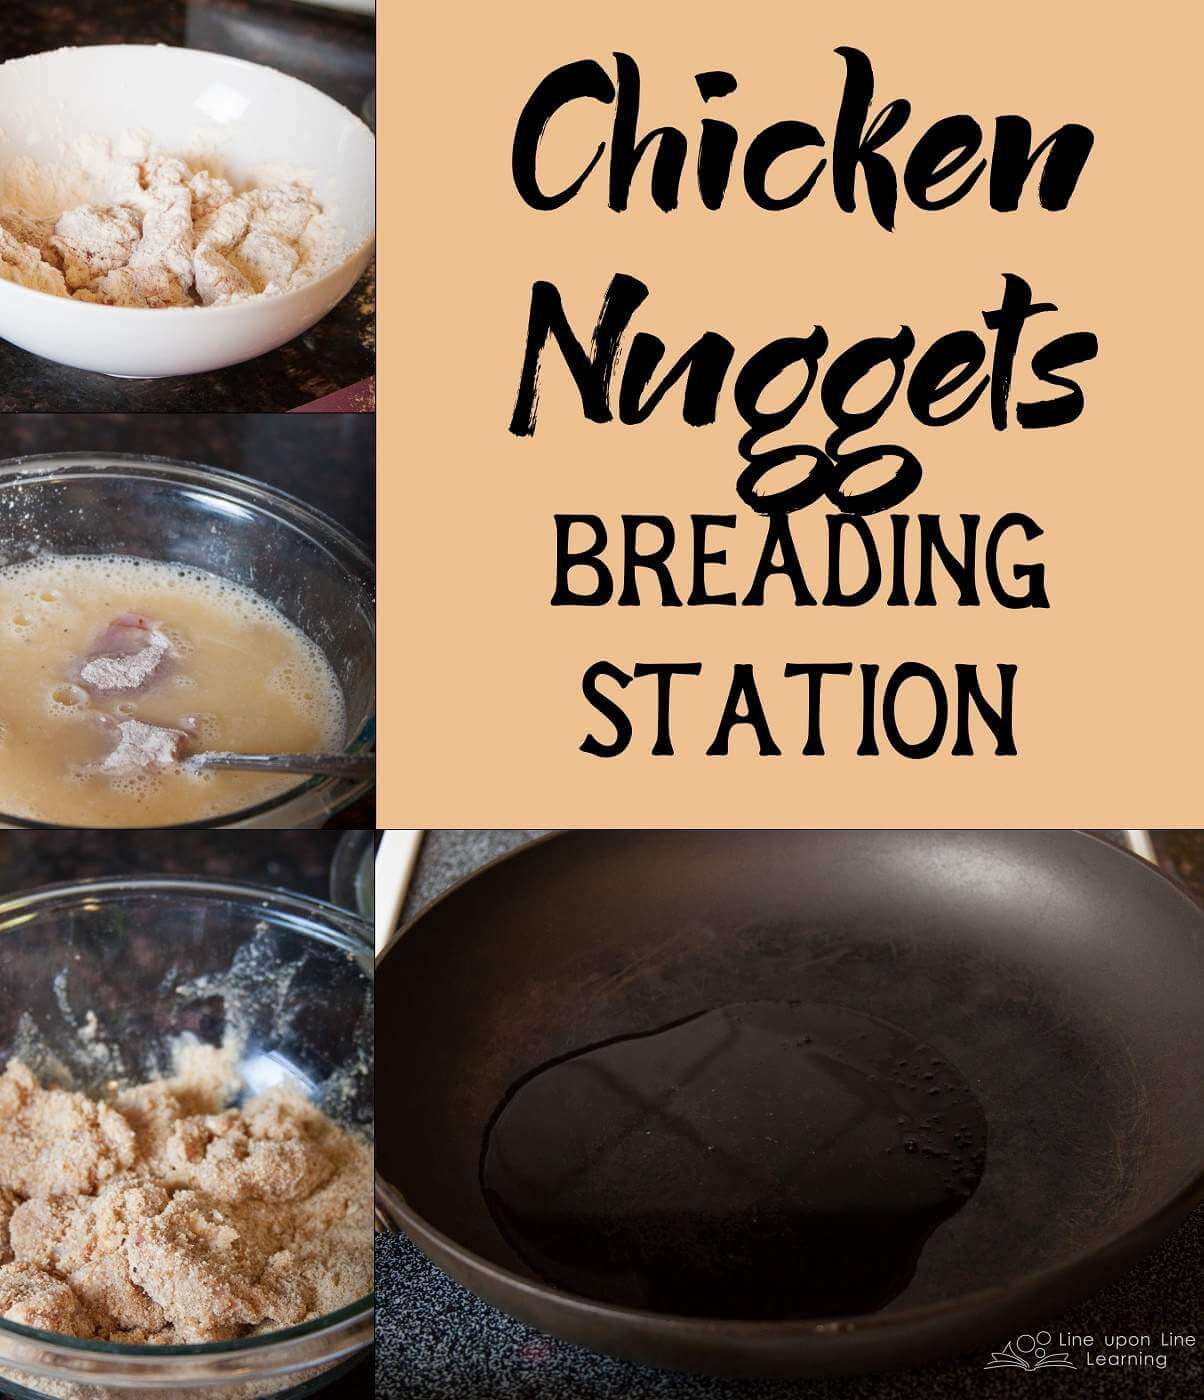 The best breading for chicken nuggets: start with flour, then eggs, then bread crumbs. Finally, fry briefly in oil.